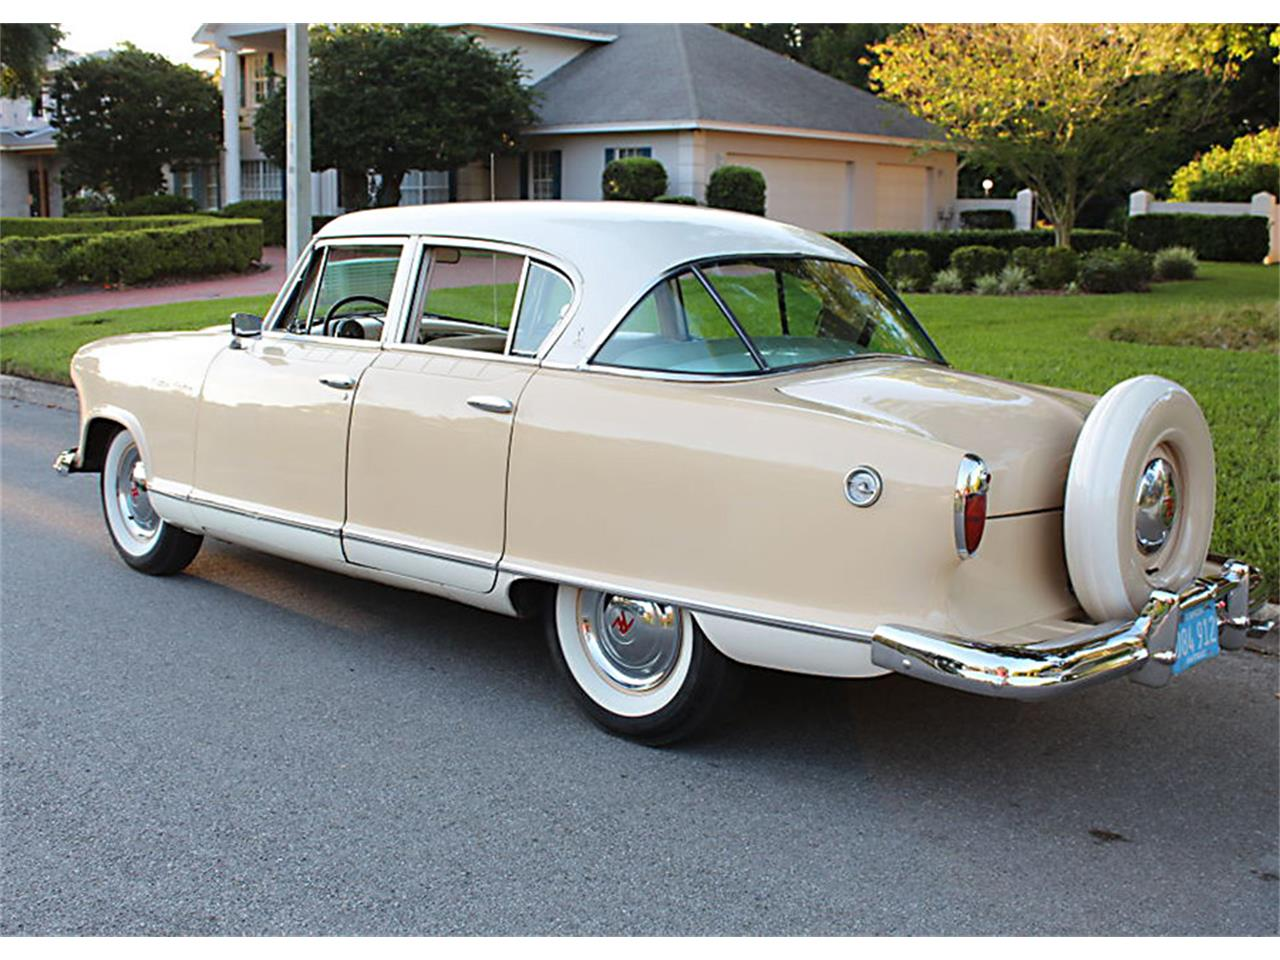 Large Picture of 1955 Nash Rambler located in Lakeland Florida - $14,500.00 Offered by MJC Classic Cars - PUZO